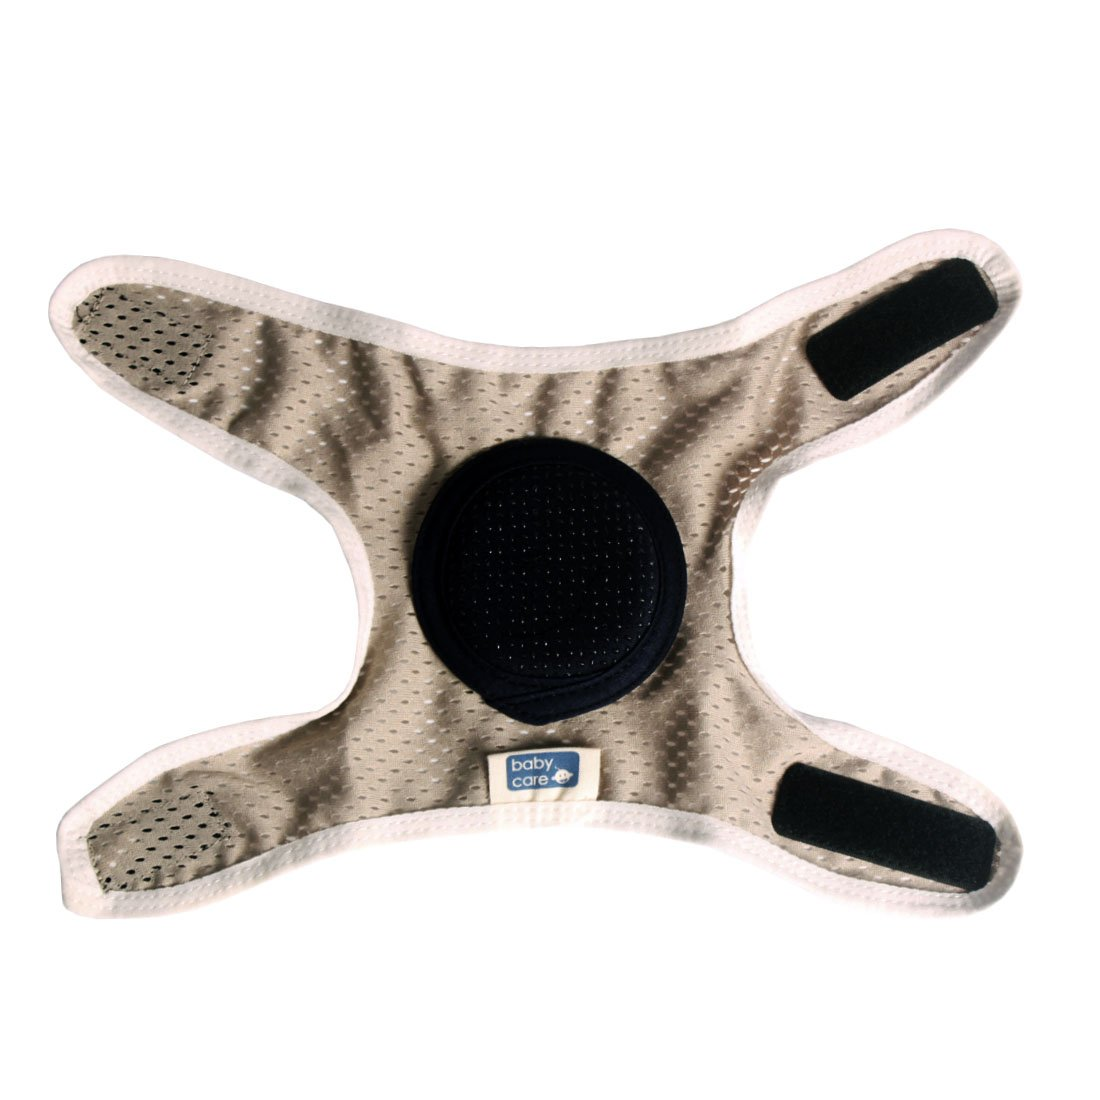 Andux Zone Baby Crawling Safety Protector Infant Crawling Kneepad PXHX-01